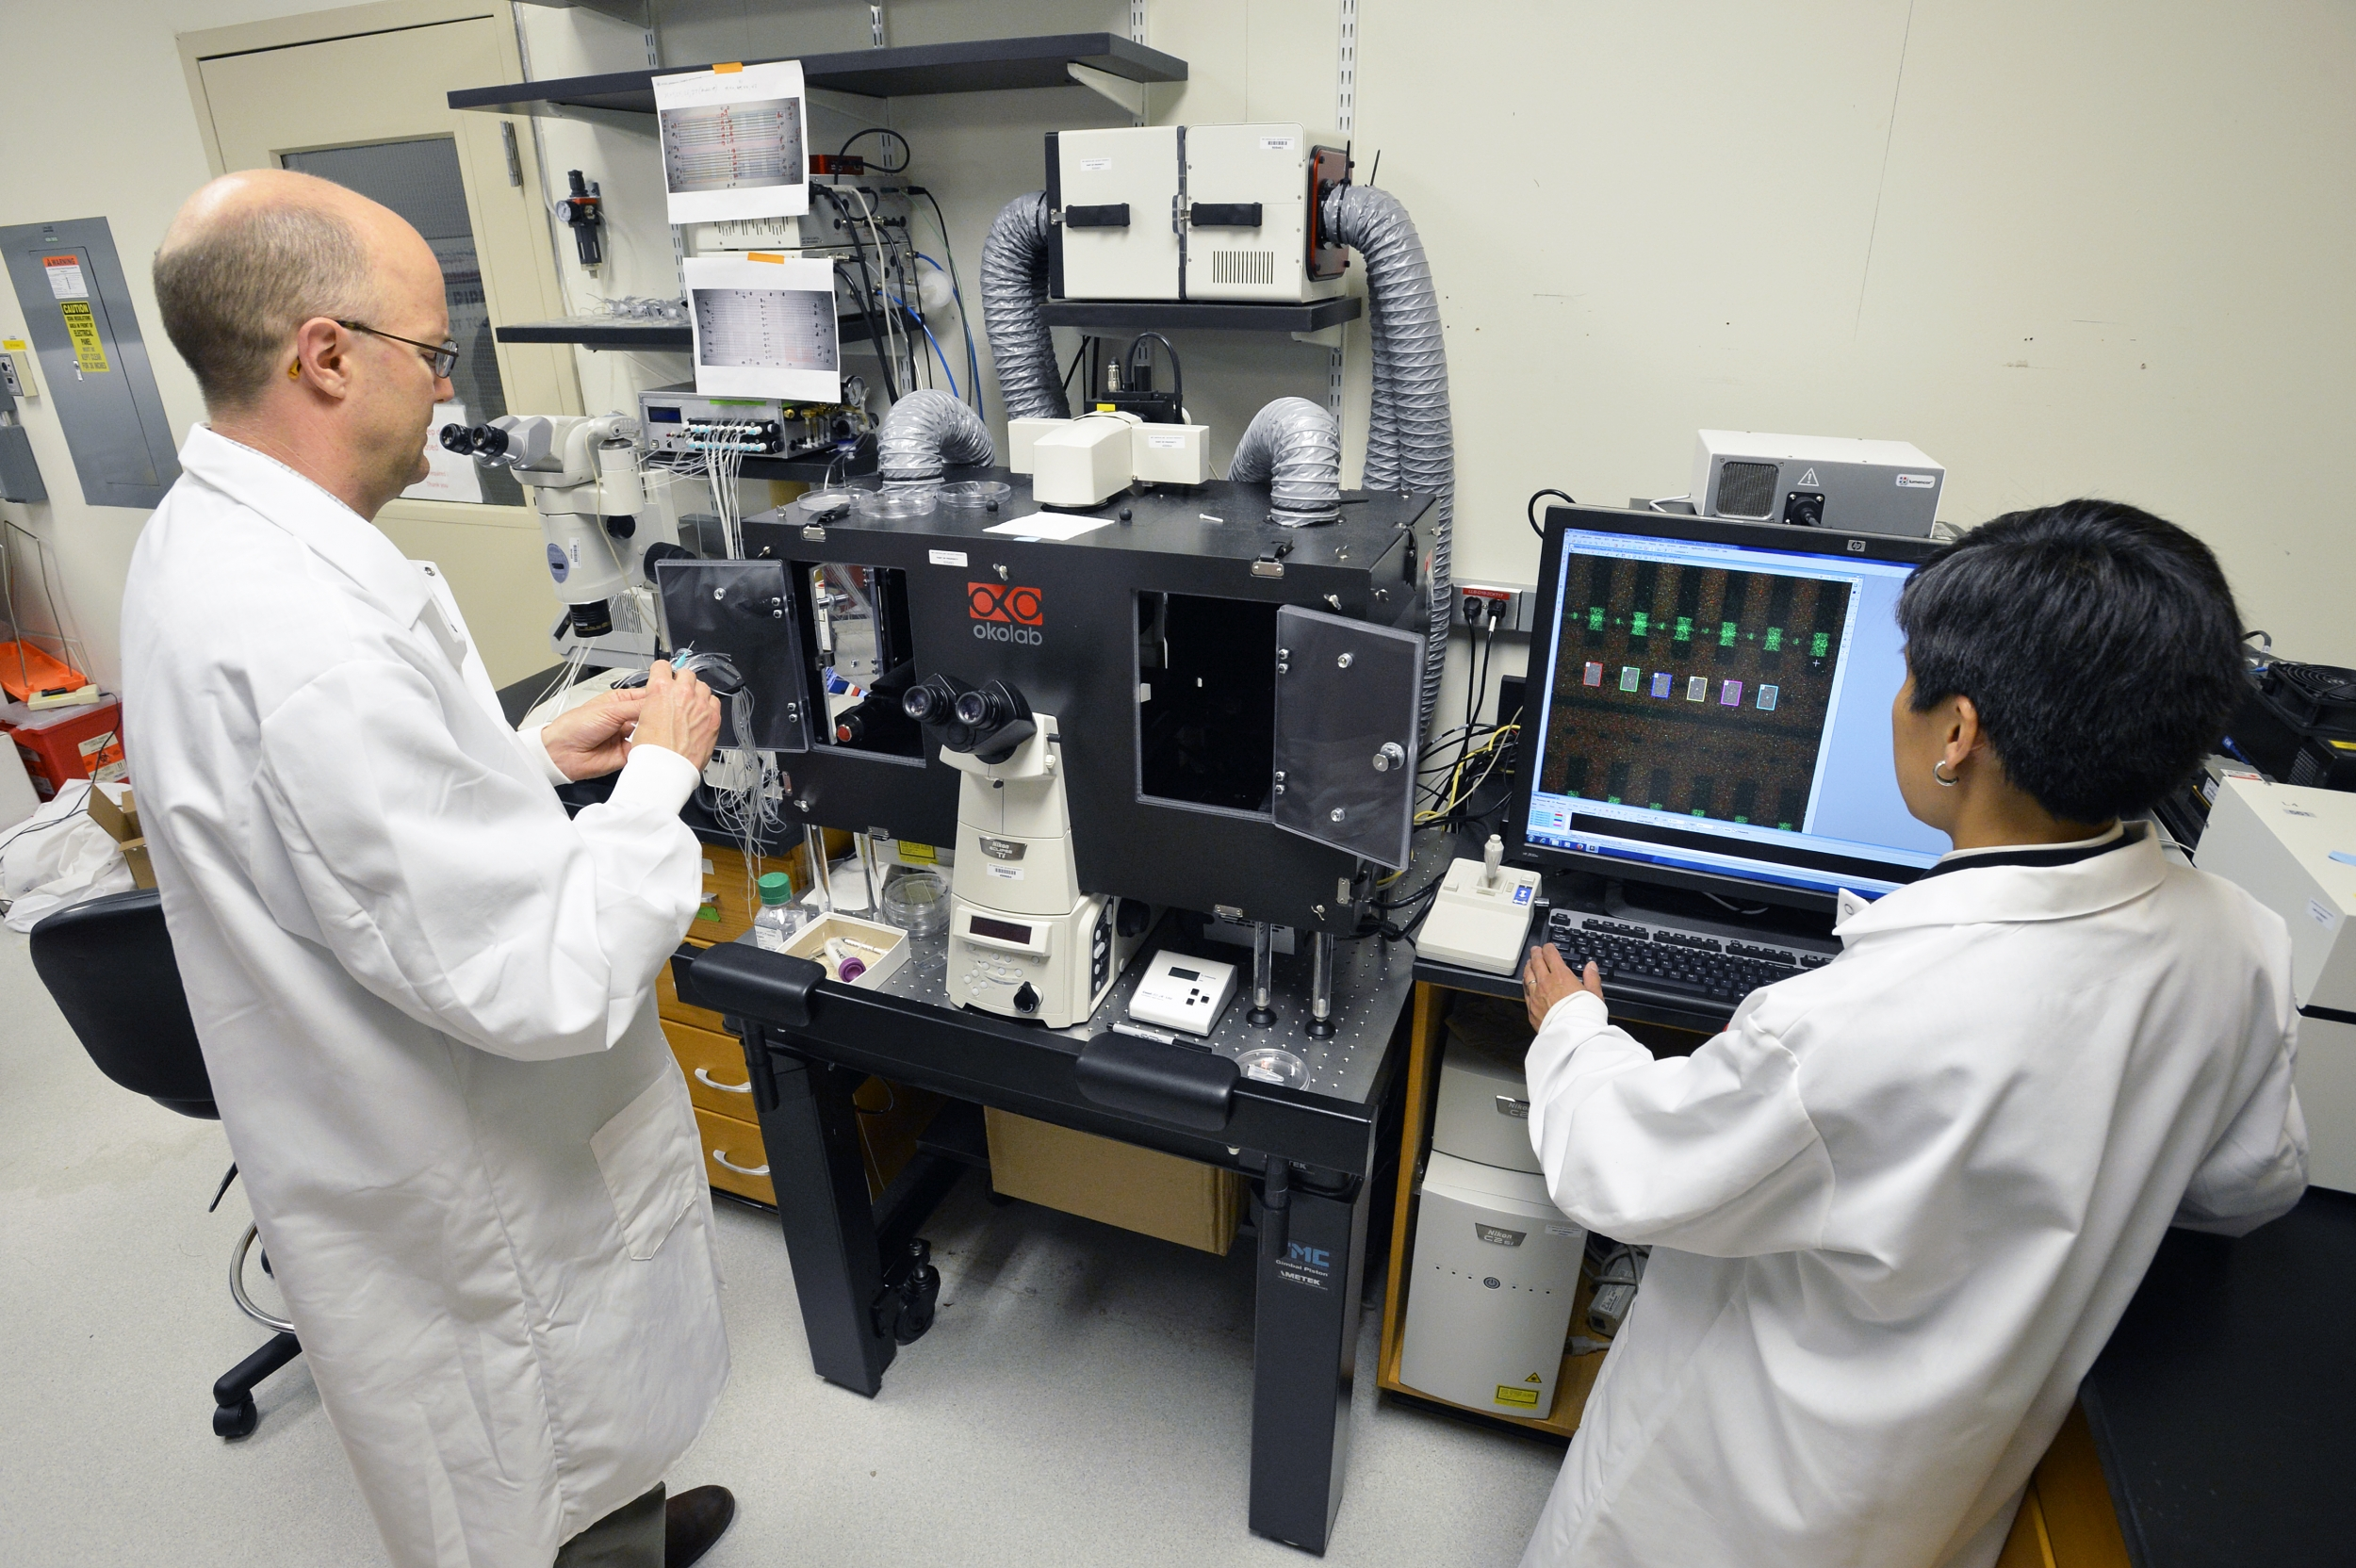 Two researchers in white lab coats stand in front of a large microscope and monitor.